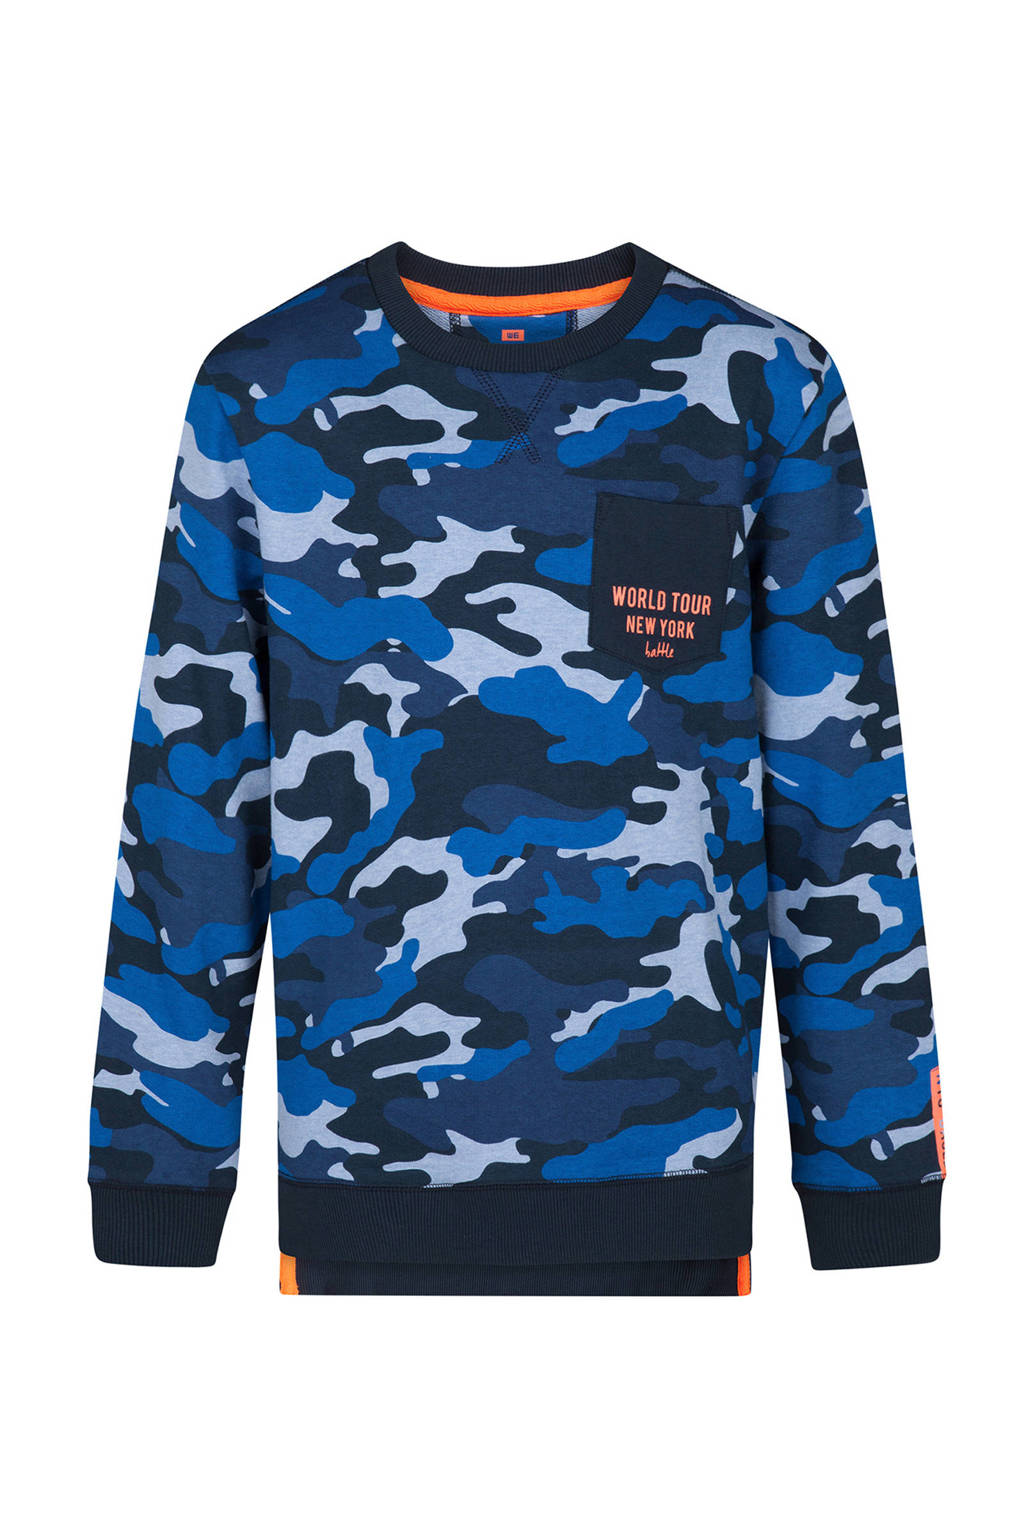 Legerprint Trui Dames.We Fashion Sweater Met All Over Camouflage Print Blauw Wehkamp